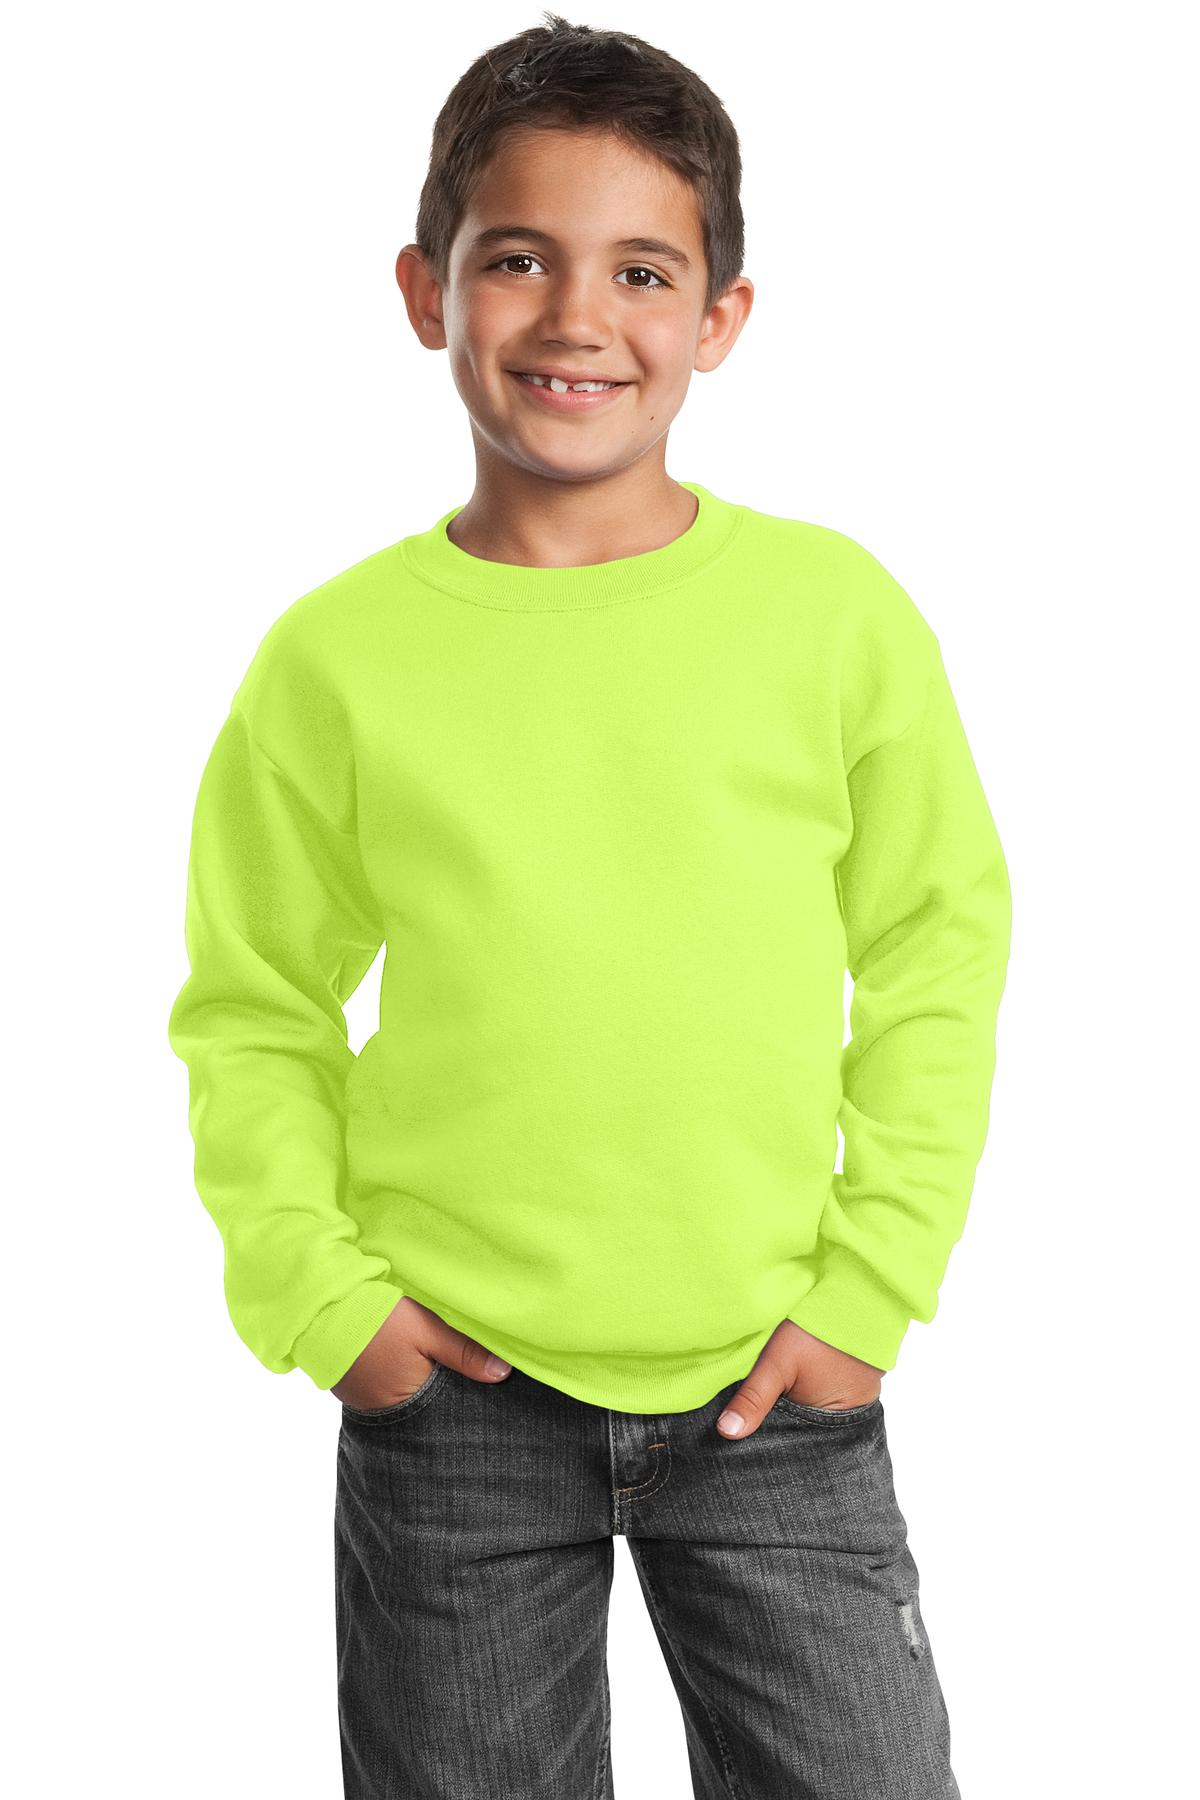 Port & Company ®  - Youth Core Fleece Crewneck Sweatshirt.  PC90Y - Neon Yellow